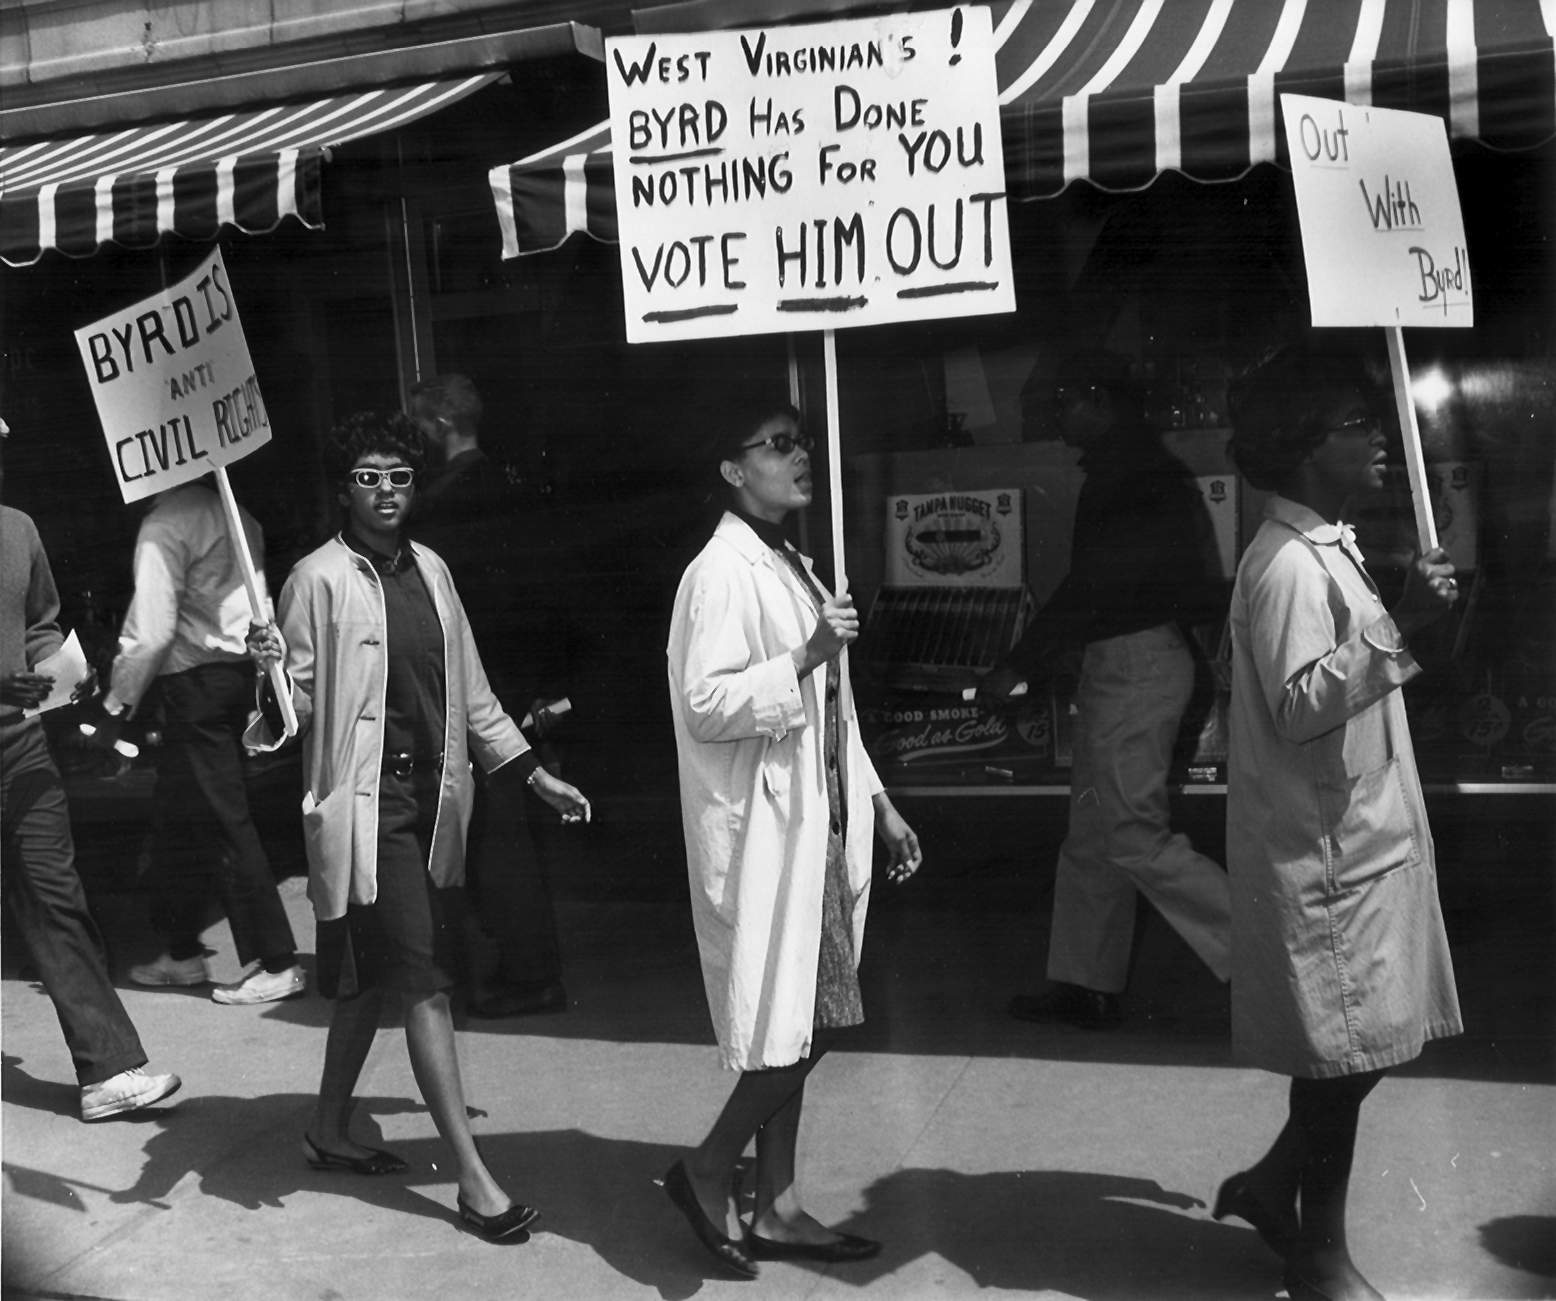 A photo of African-Americans protesting Robert C. Byrd for filibustering the Civil Rights Act bill.